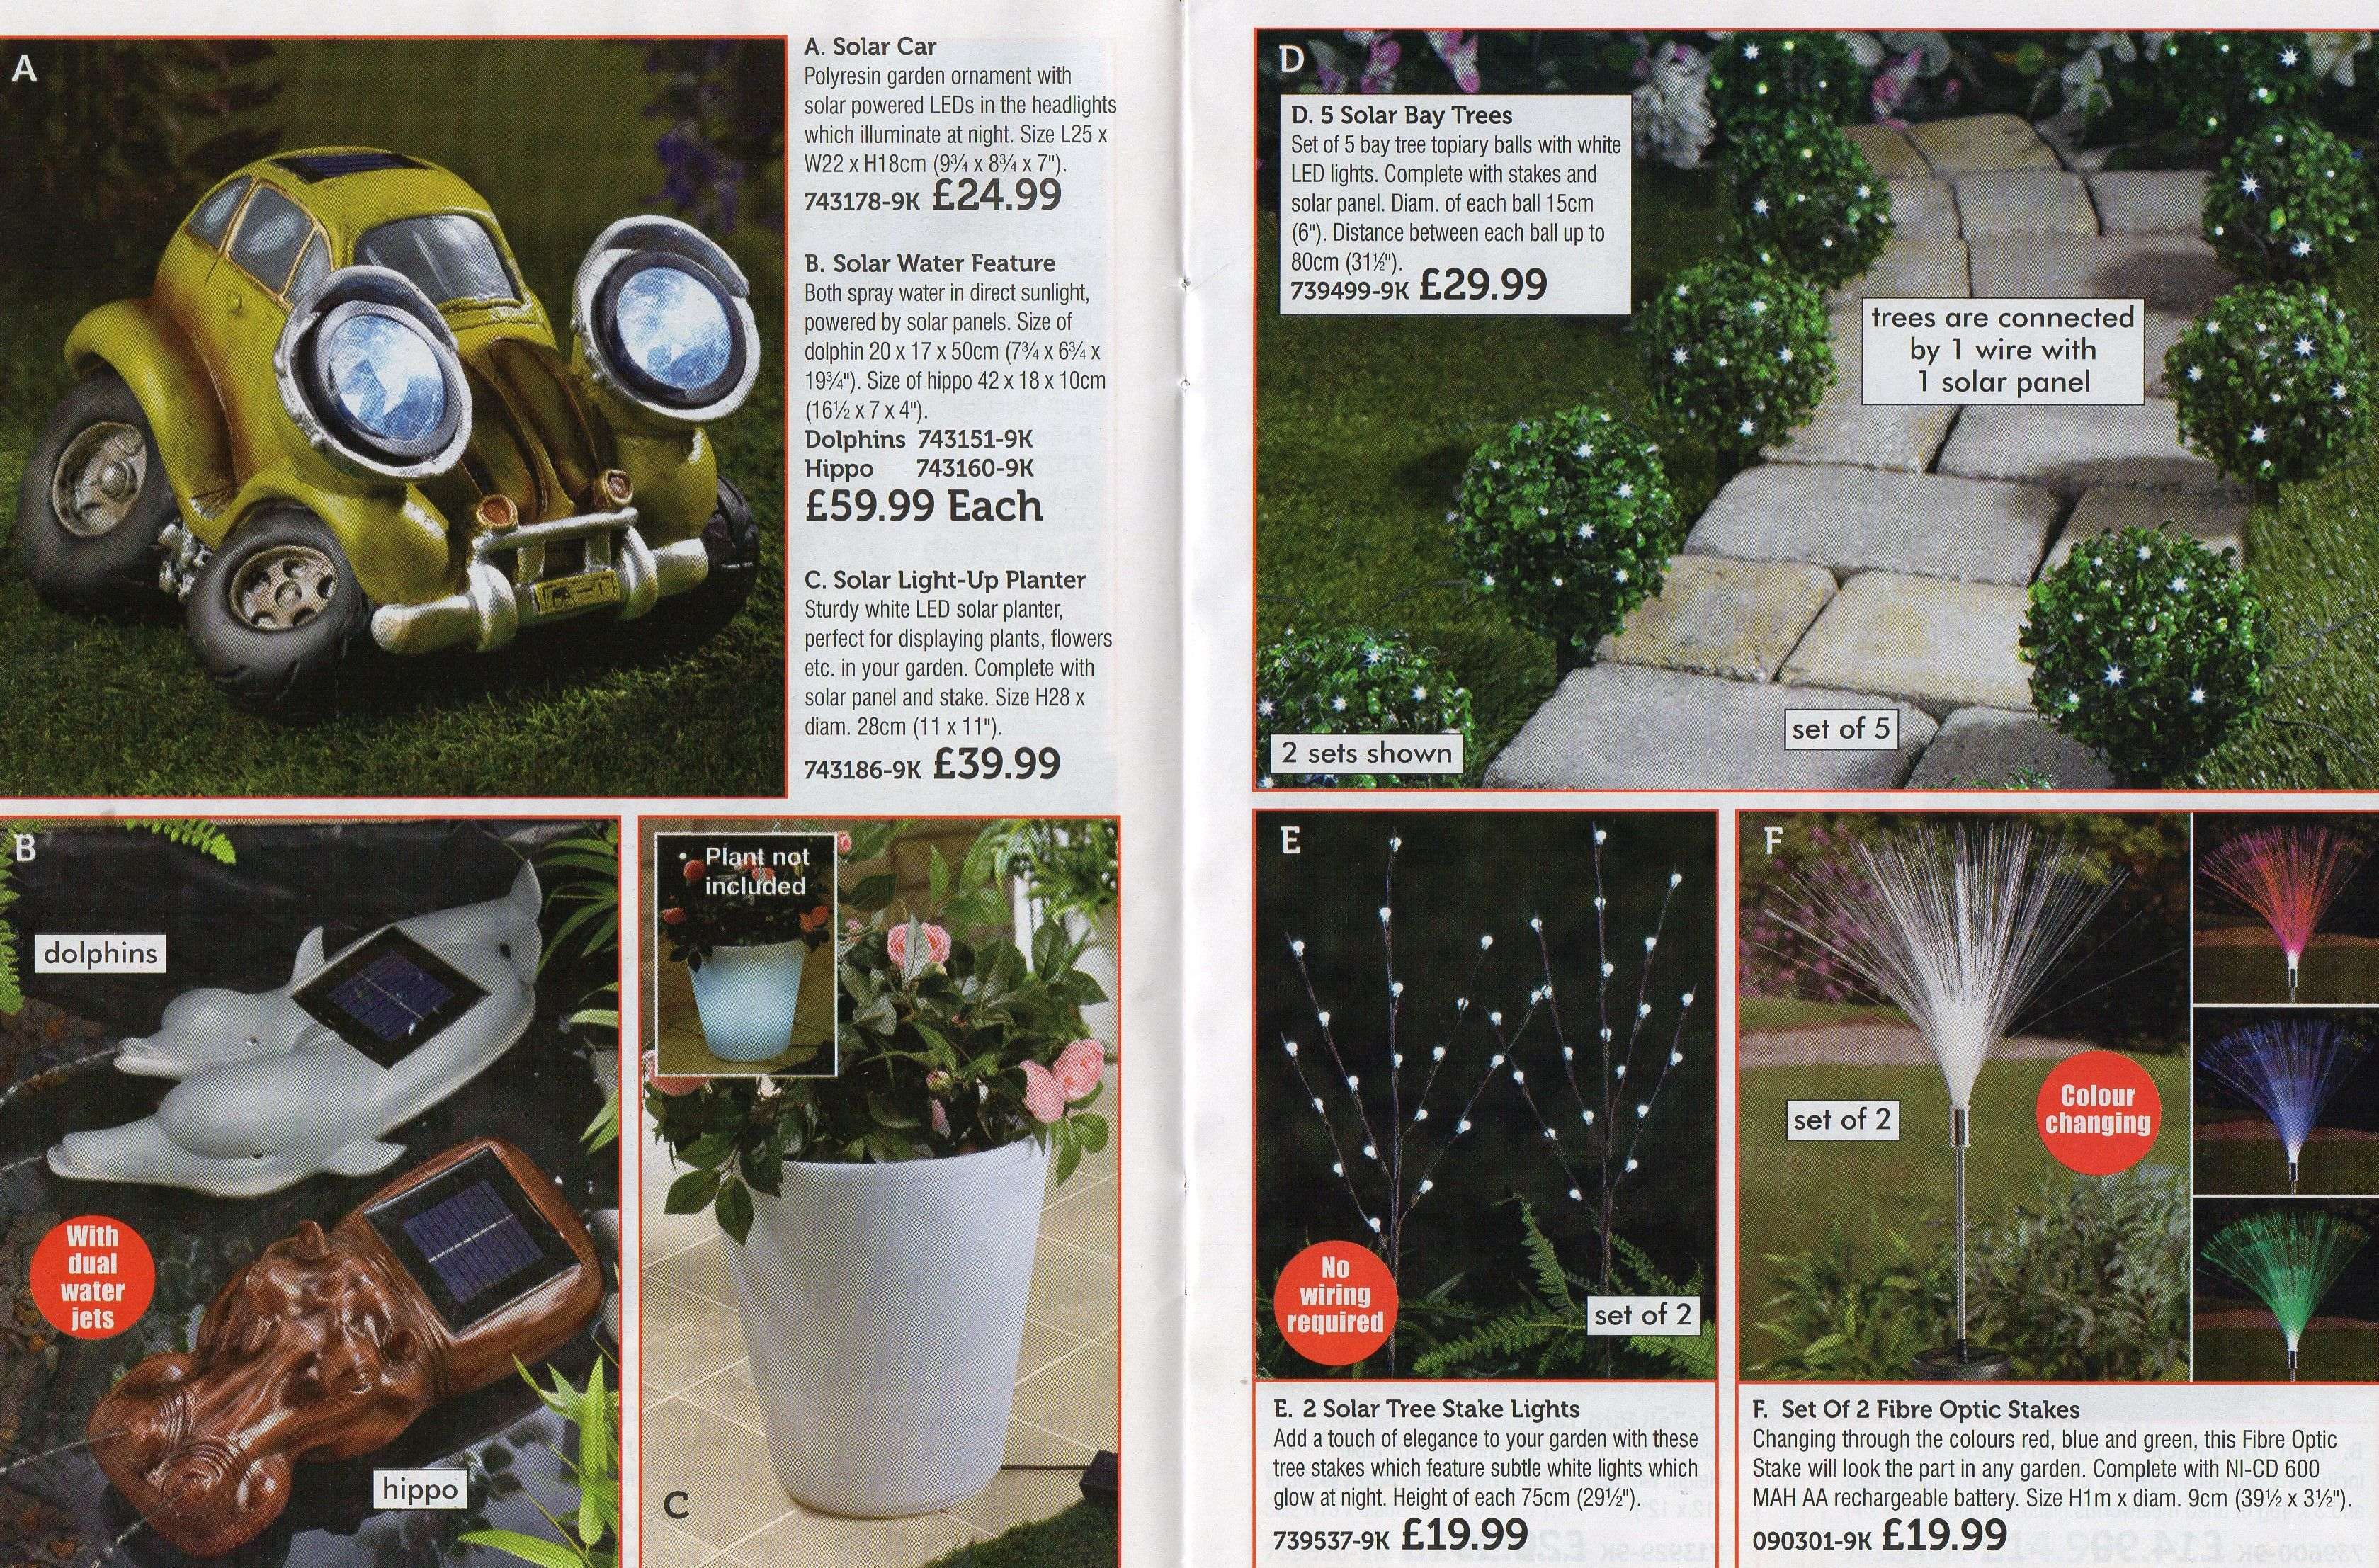 kleeneze new plus catalogue click picture to see online shop